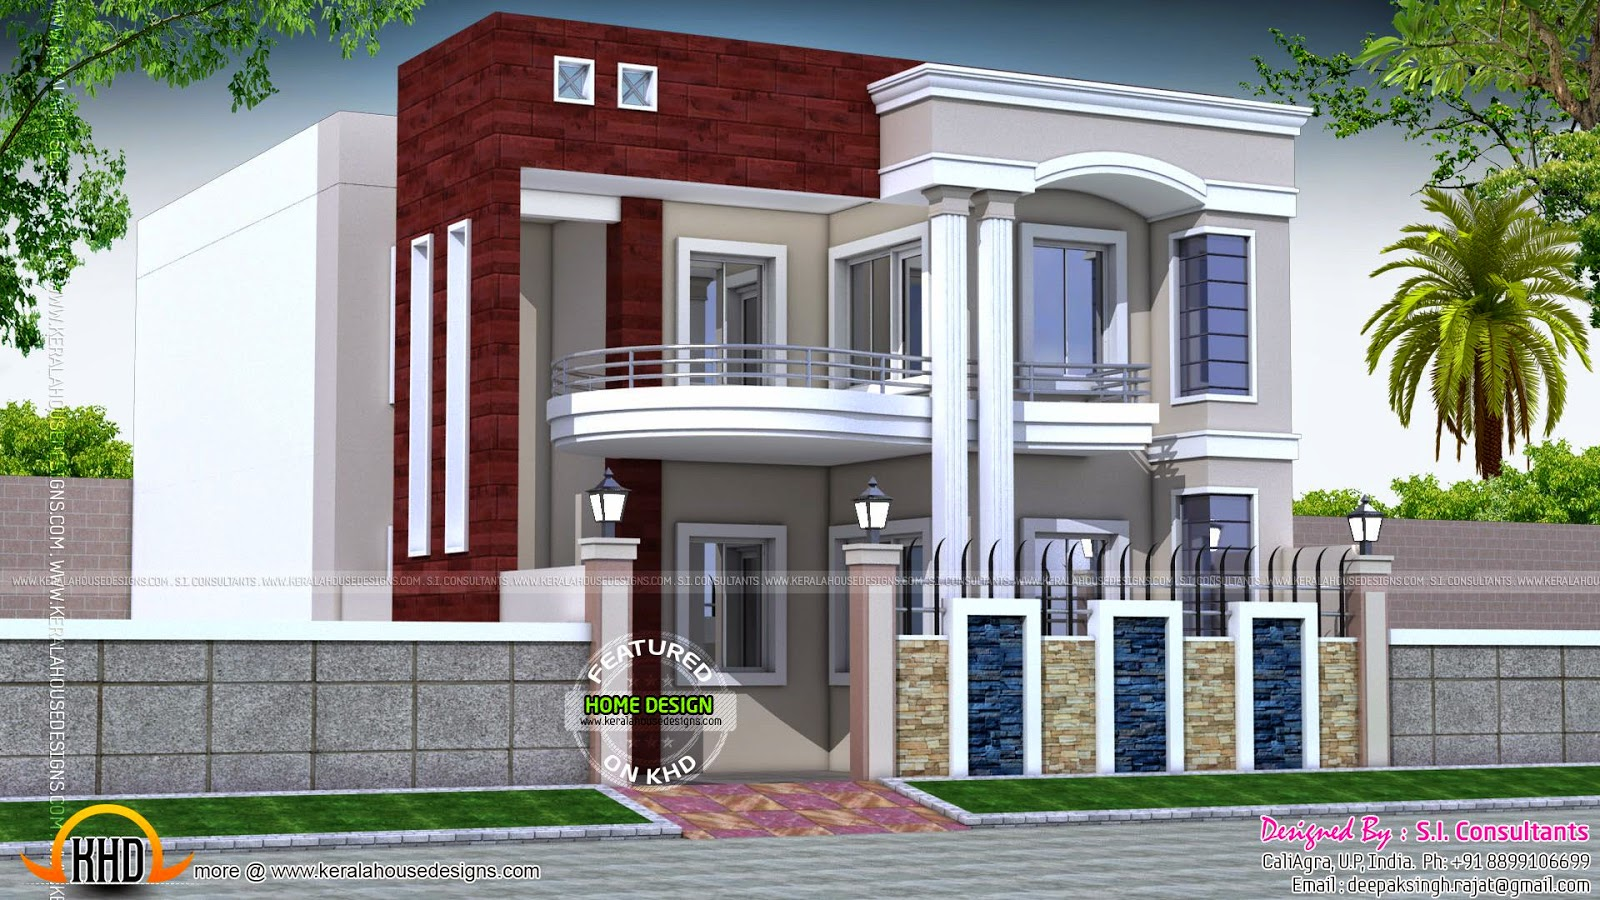 House design in north india kerala home design and floor Low cost home design in india